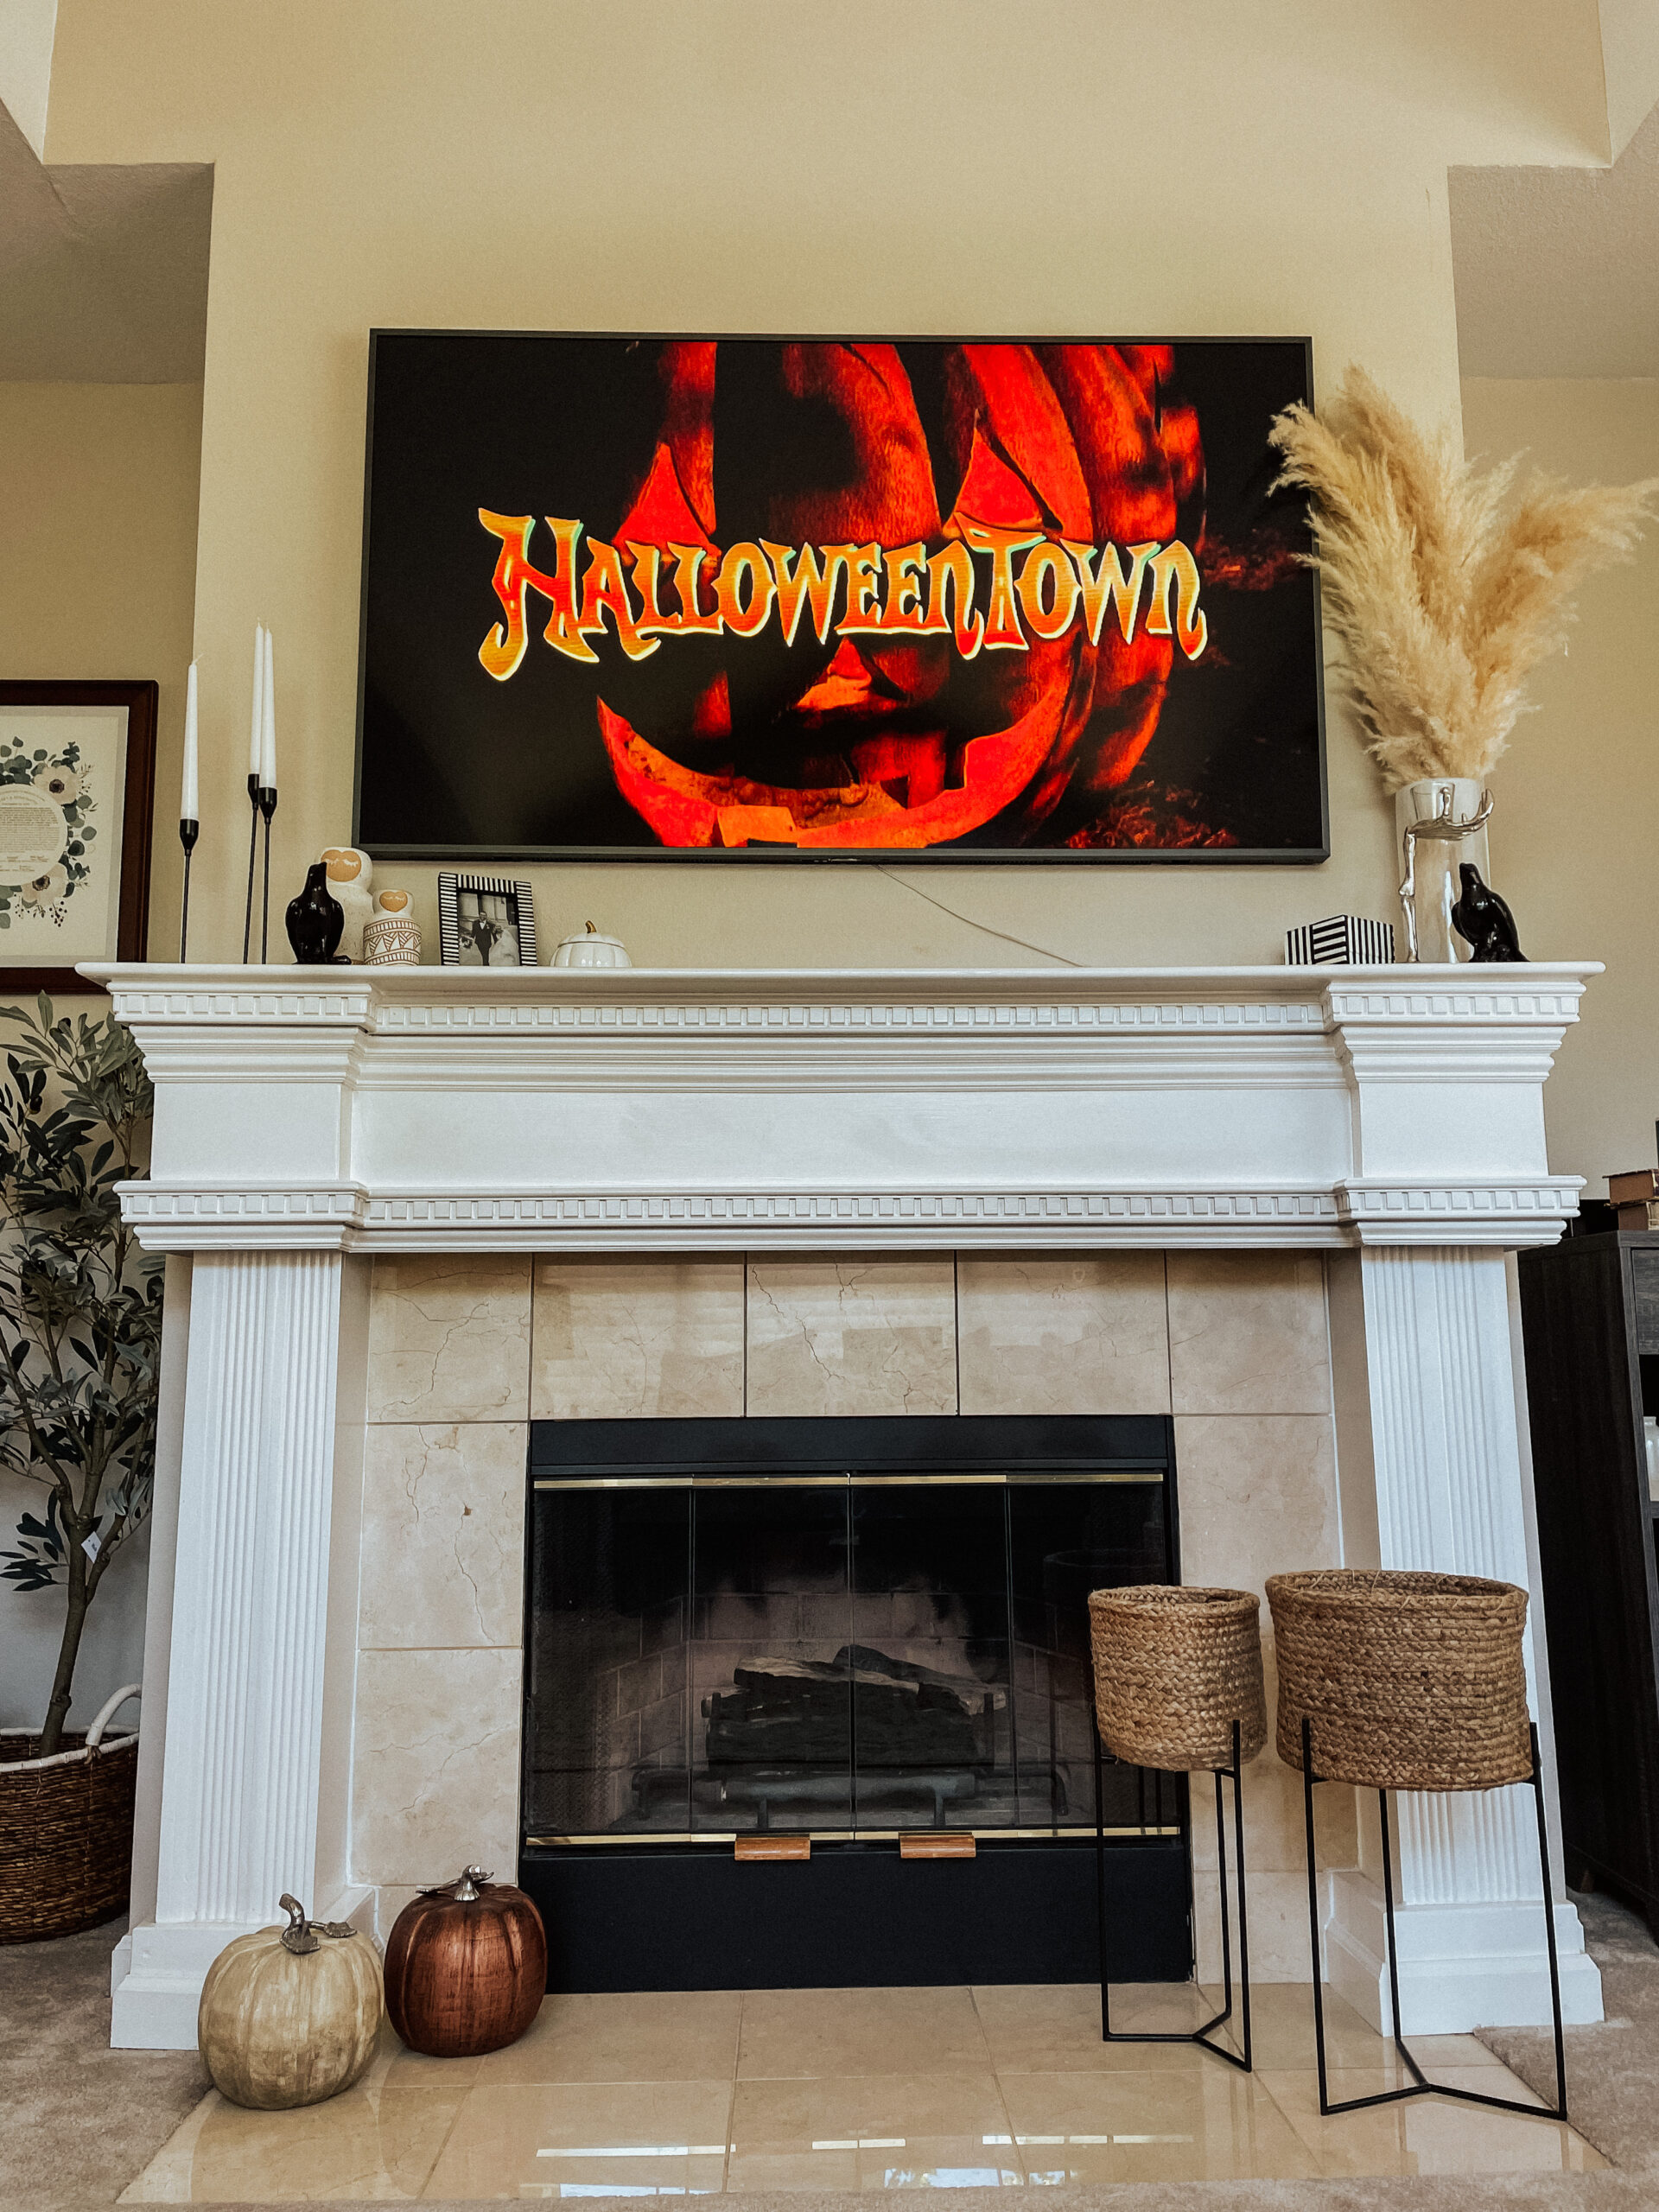 In the mood for a Disney Halloween movie marathon? Check out this list of the best Halloween movies on Disney Plus in 2021.